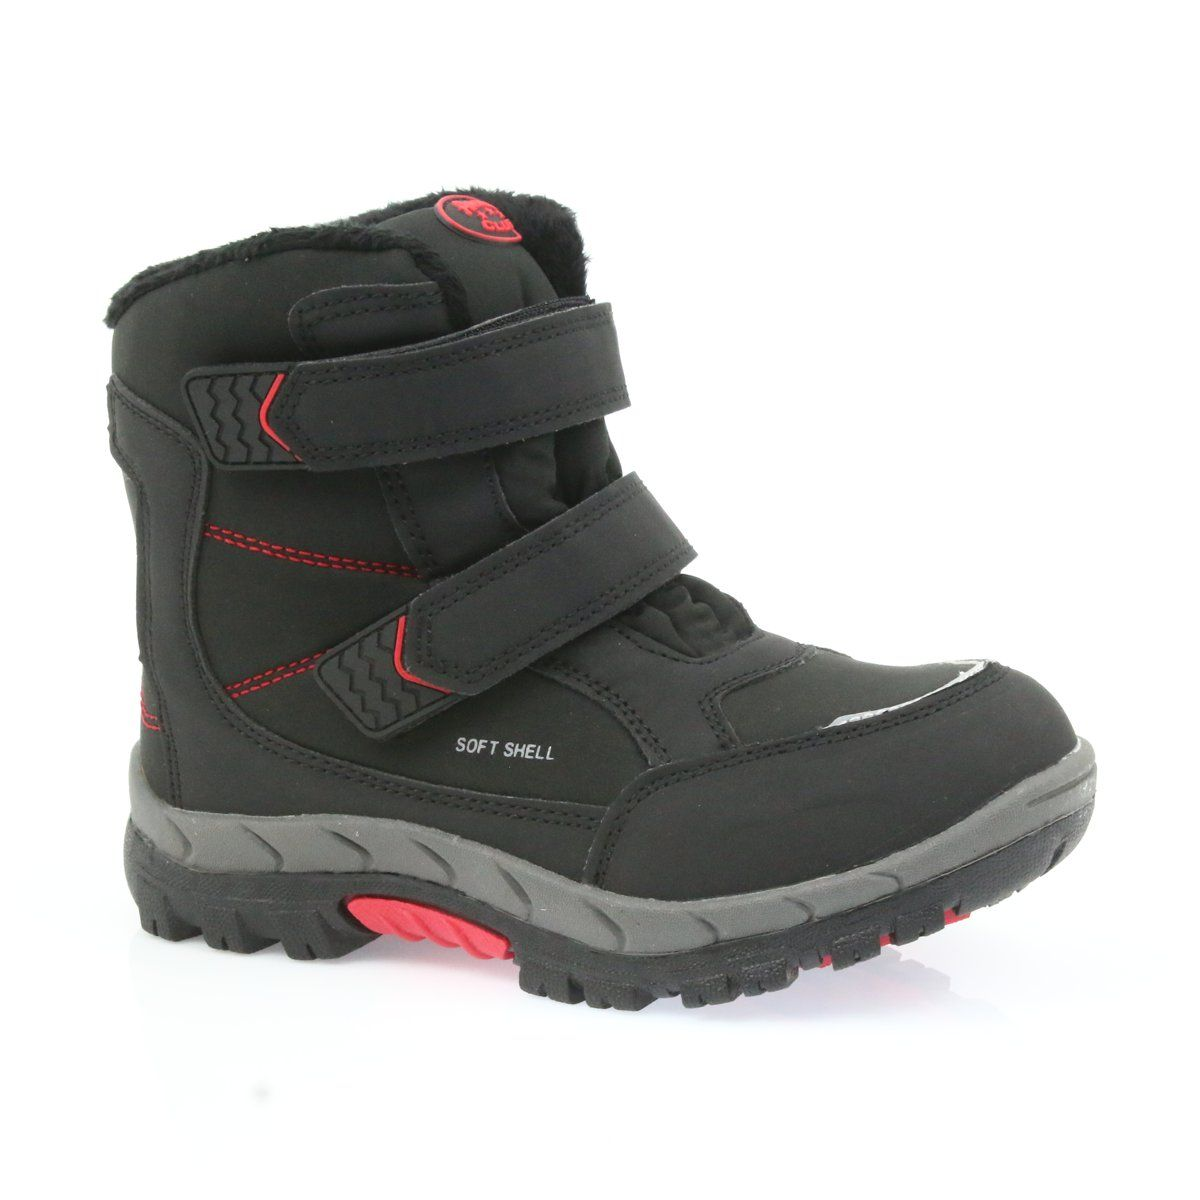 American Club American Boots Winter Boots With A 3123 Membrane Black Red Boots Winter Boots Childrens Boots